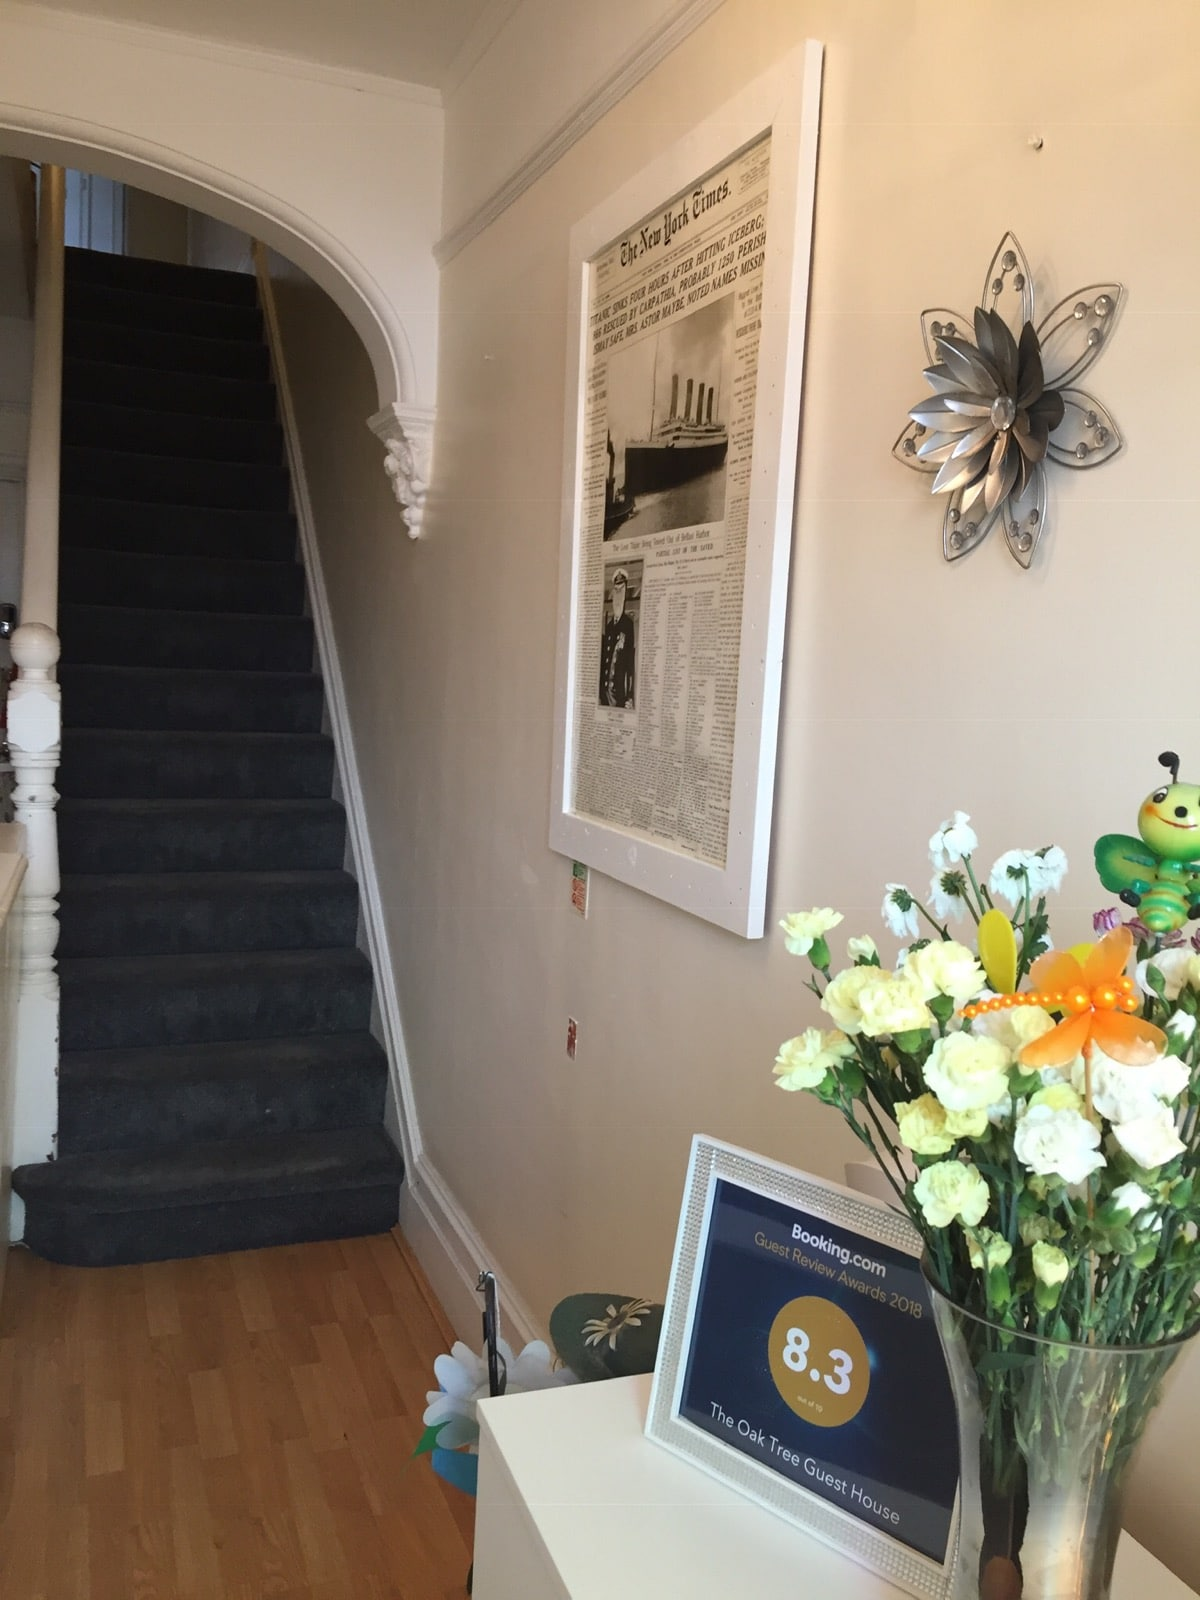 Reception 2 - Accommodation In Farnborough - The Oak Tree Guest House